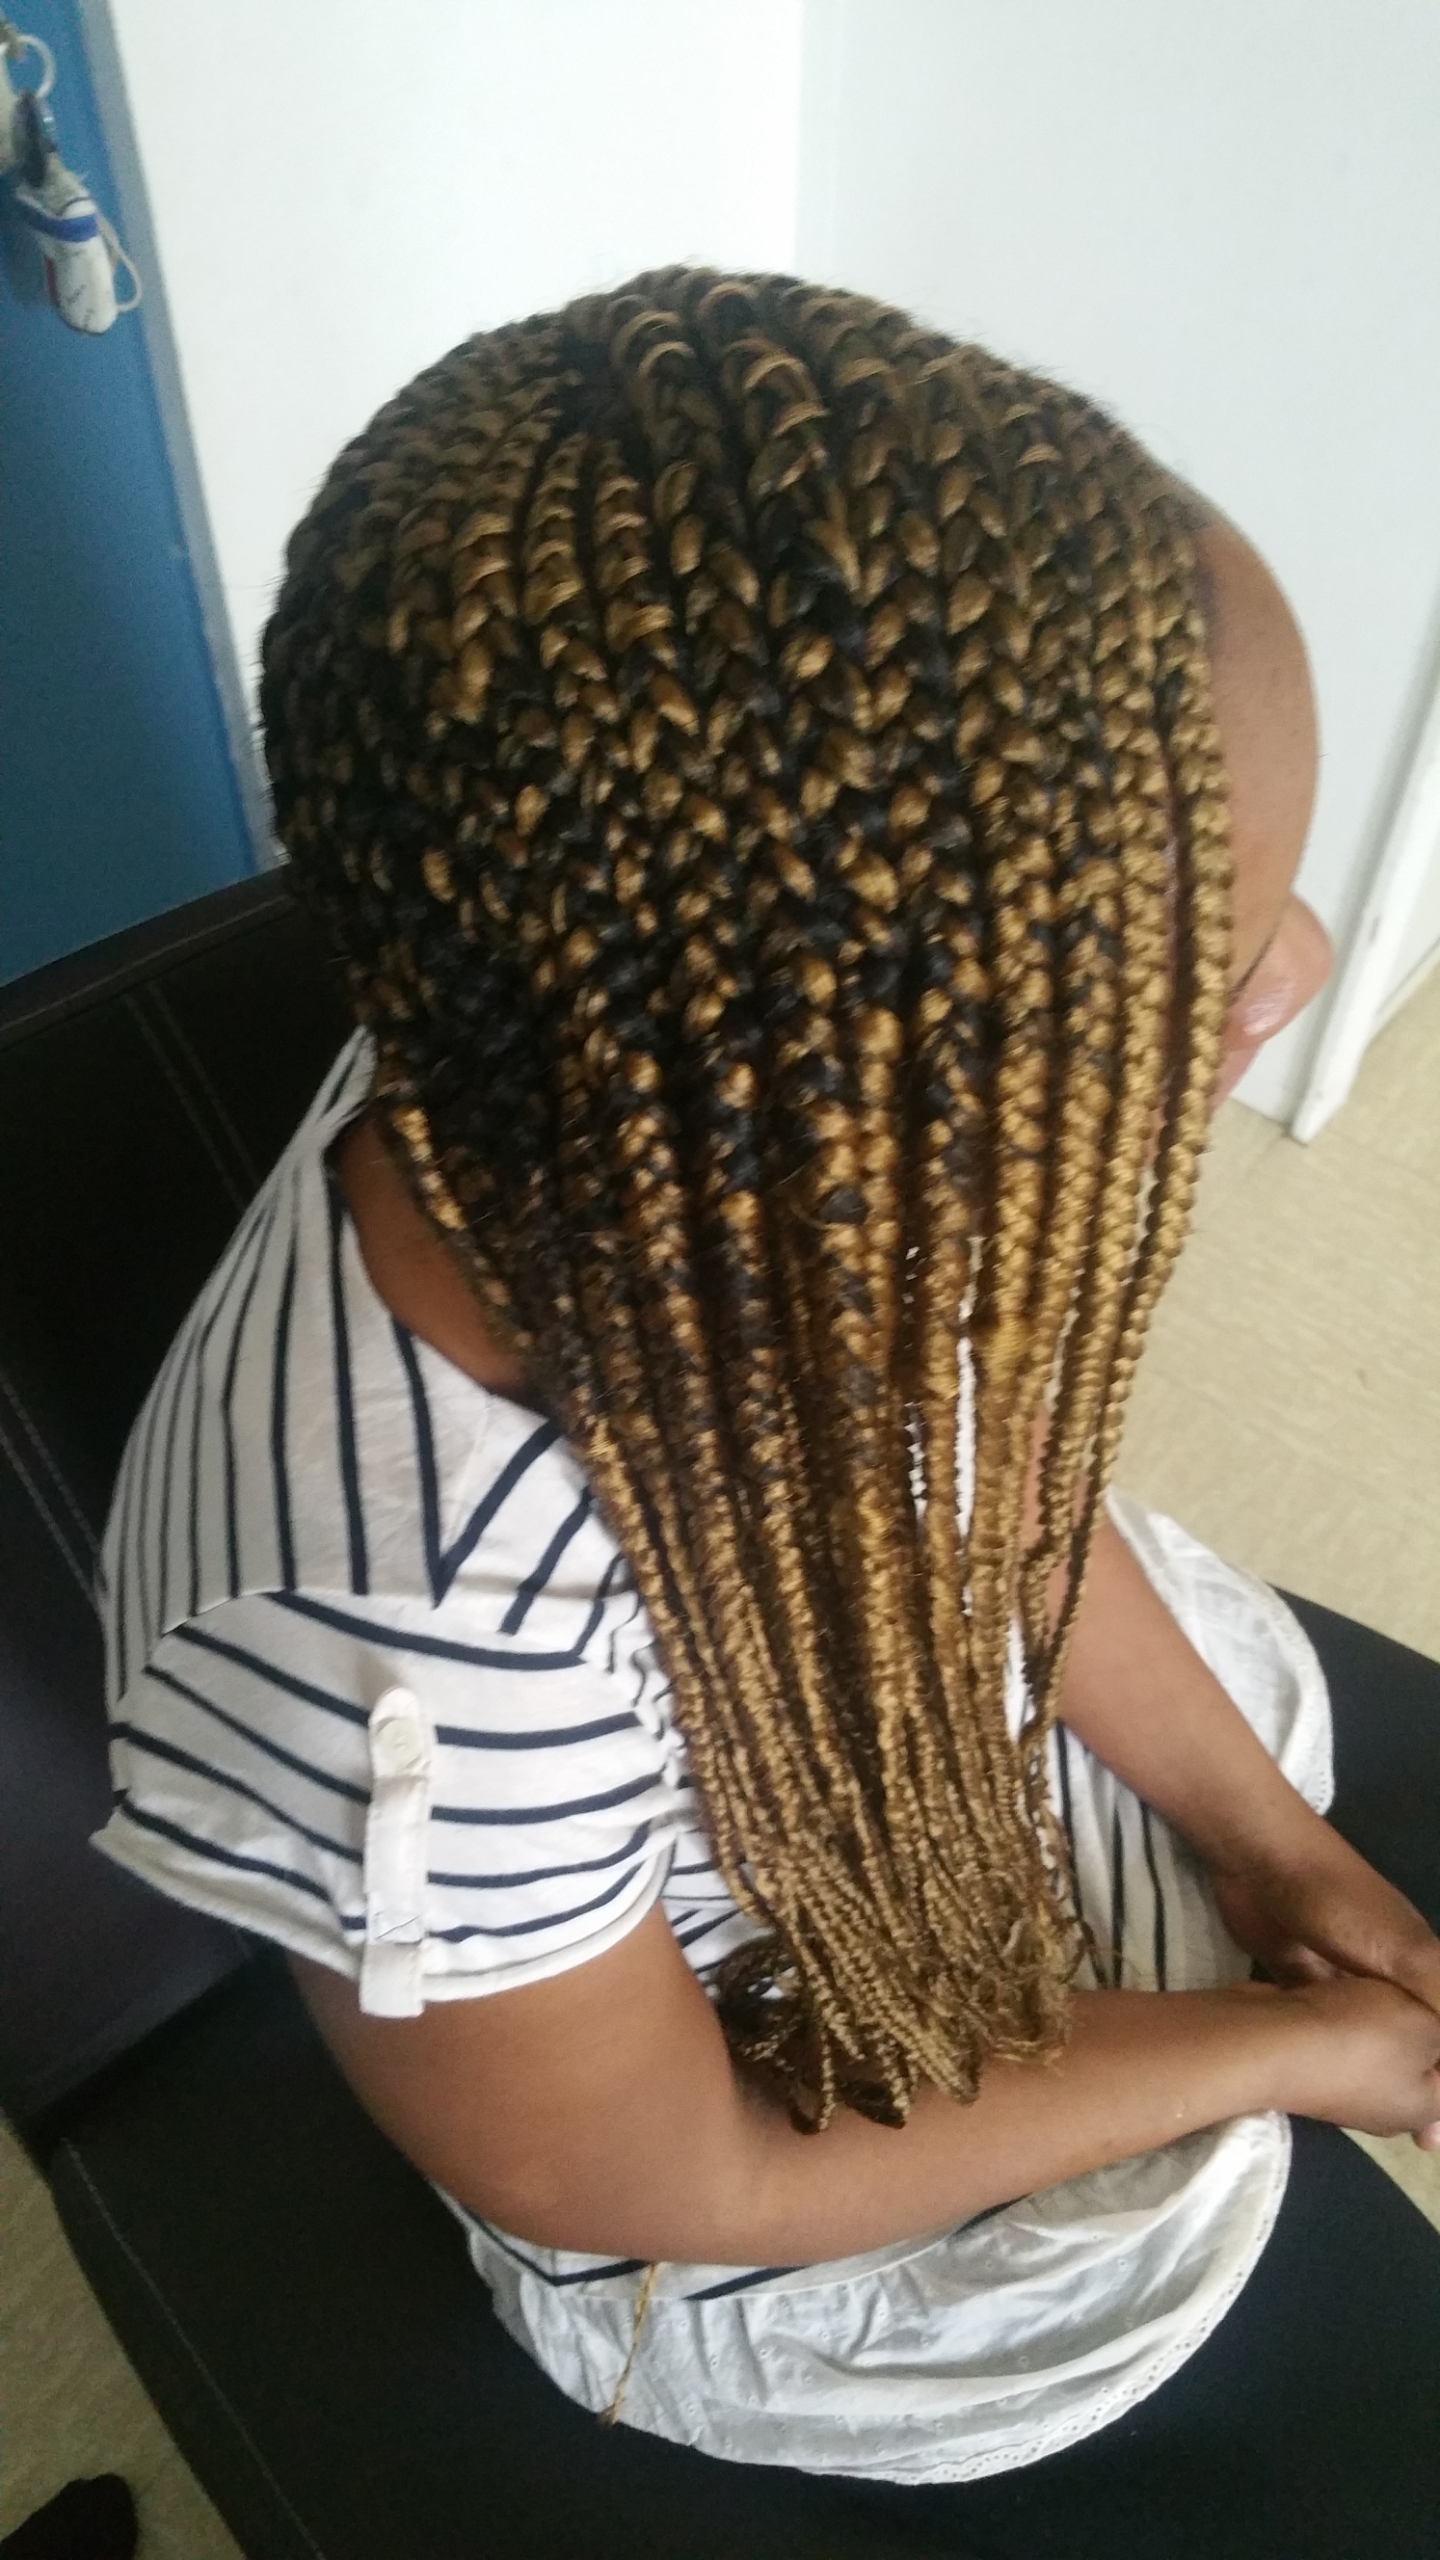 salon de coiffure afro tresse tresses box braids crochet braids vanilles tissages paris 75 77 78 91 92 93 94 95 MCLJDOQN